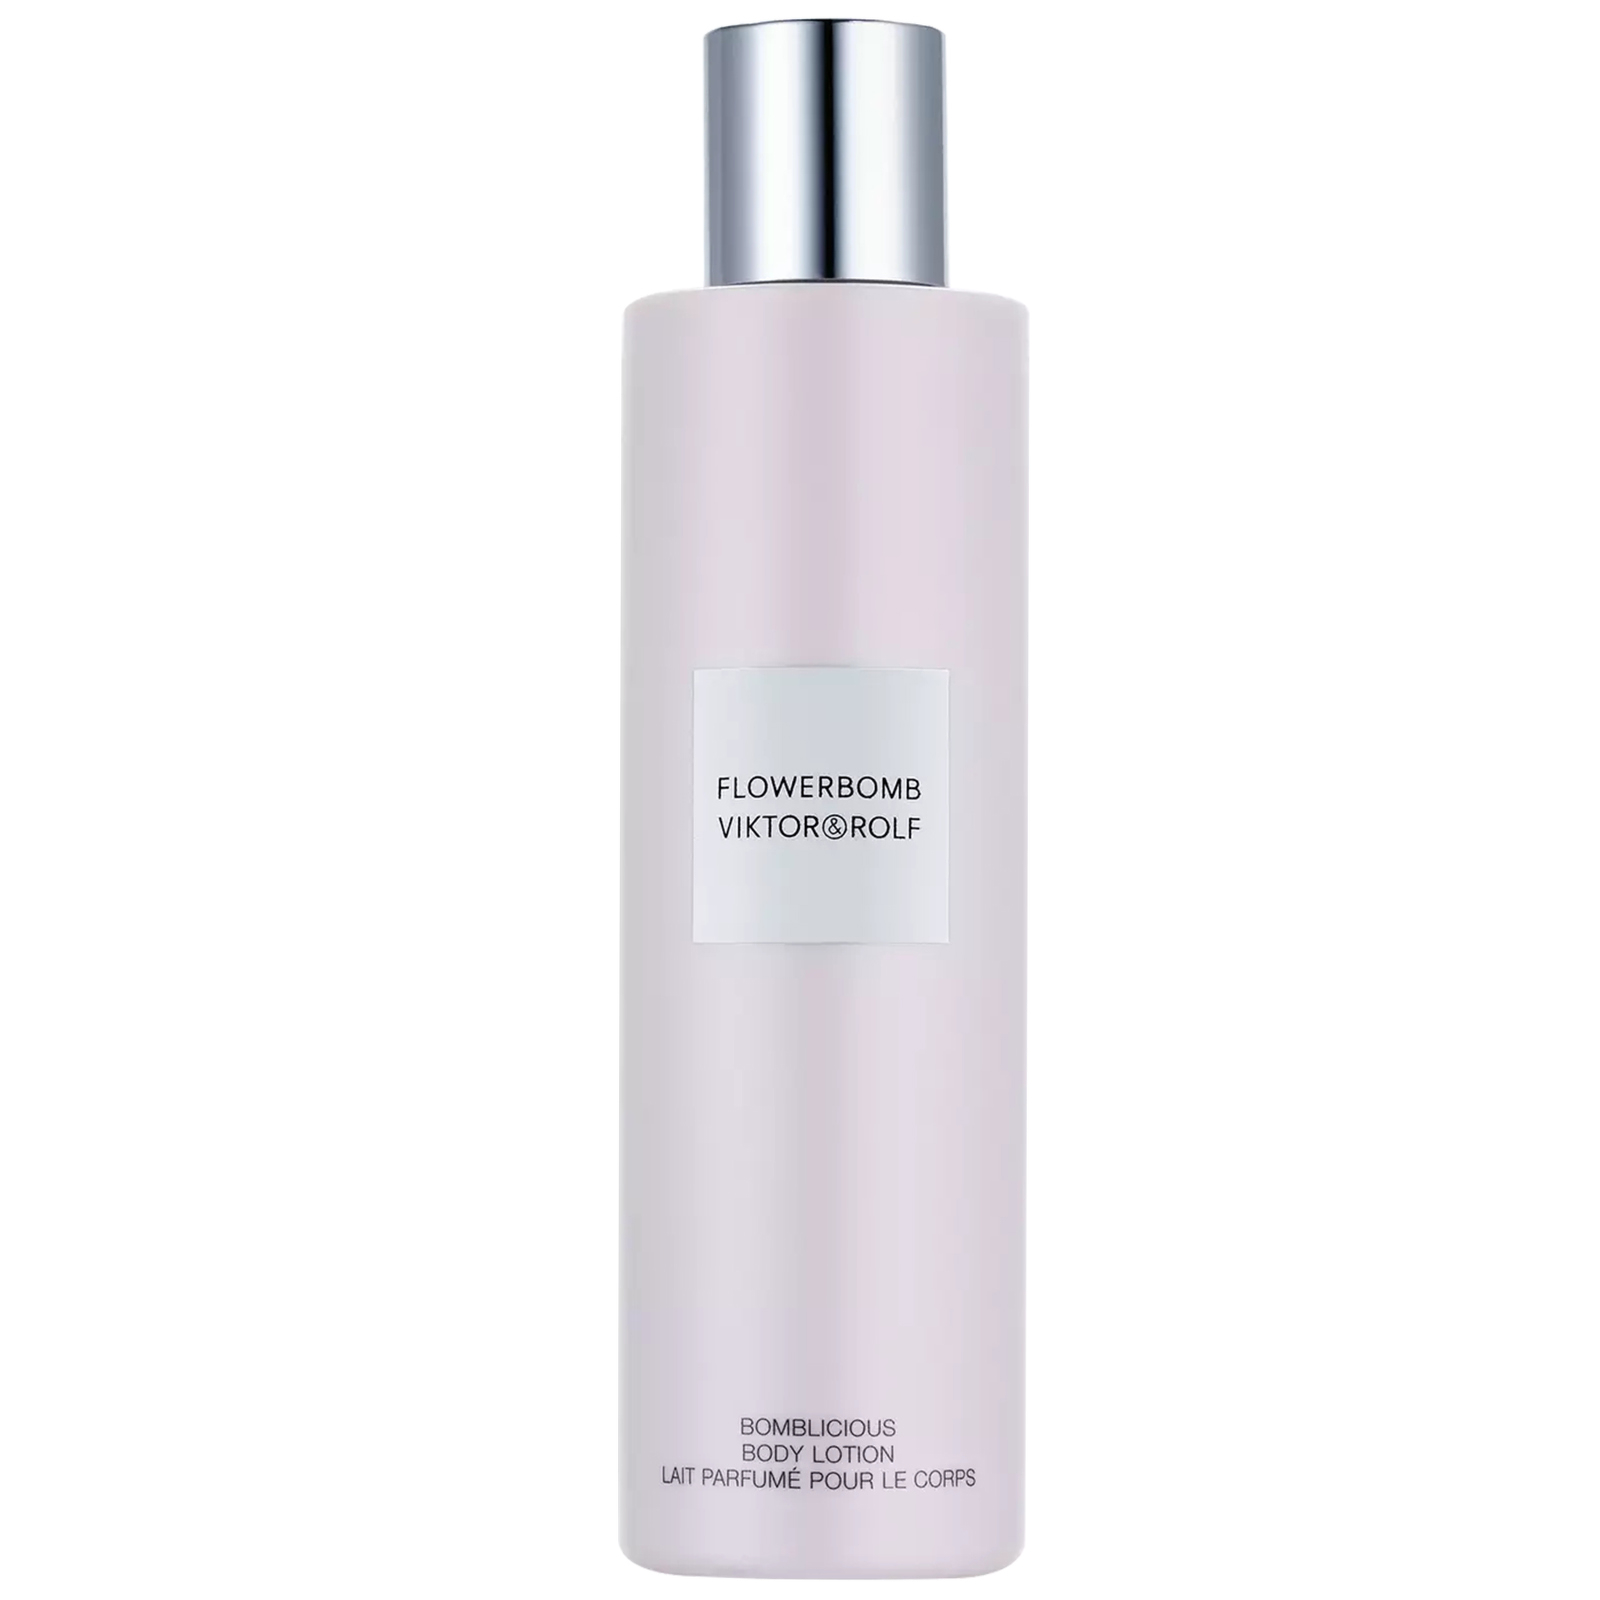 Viktor&Rolf Flowerbomb Body Lotion 200ml